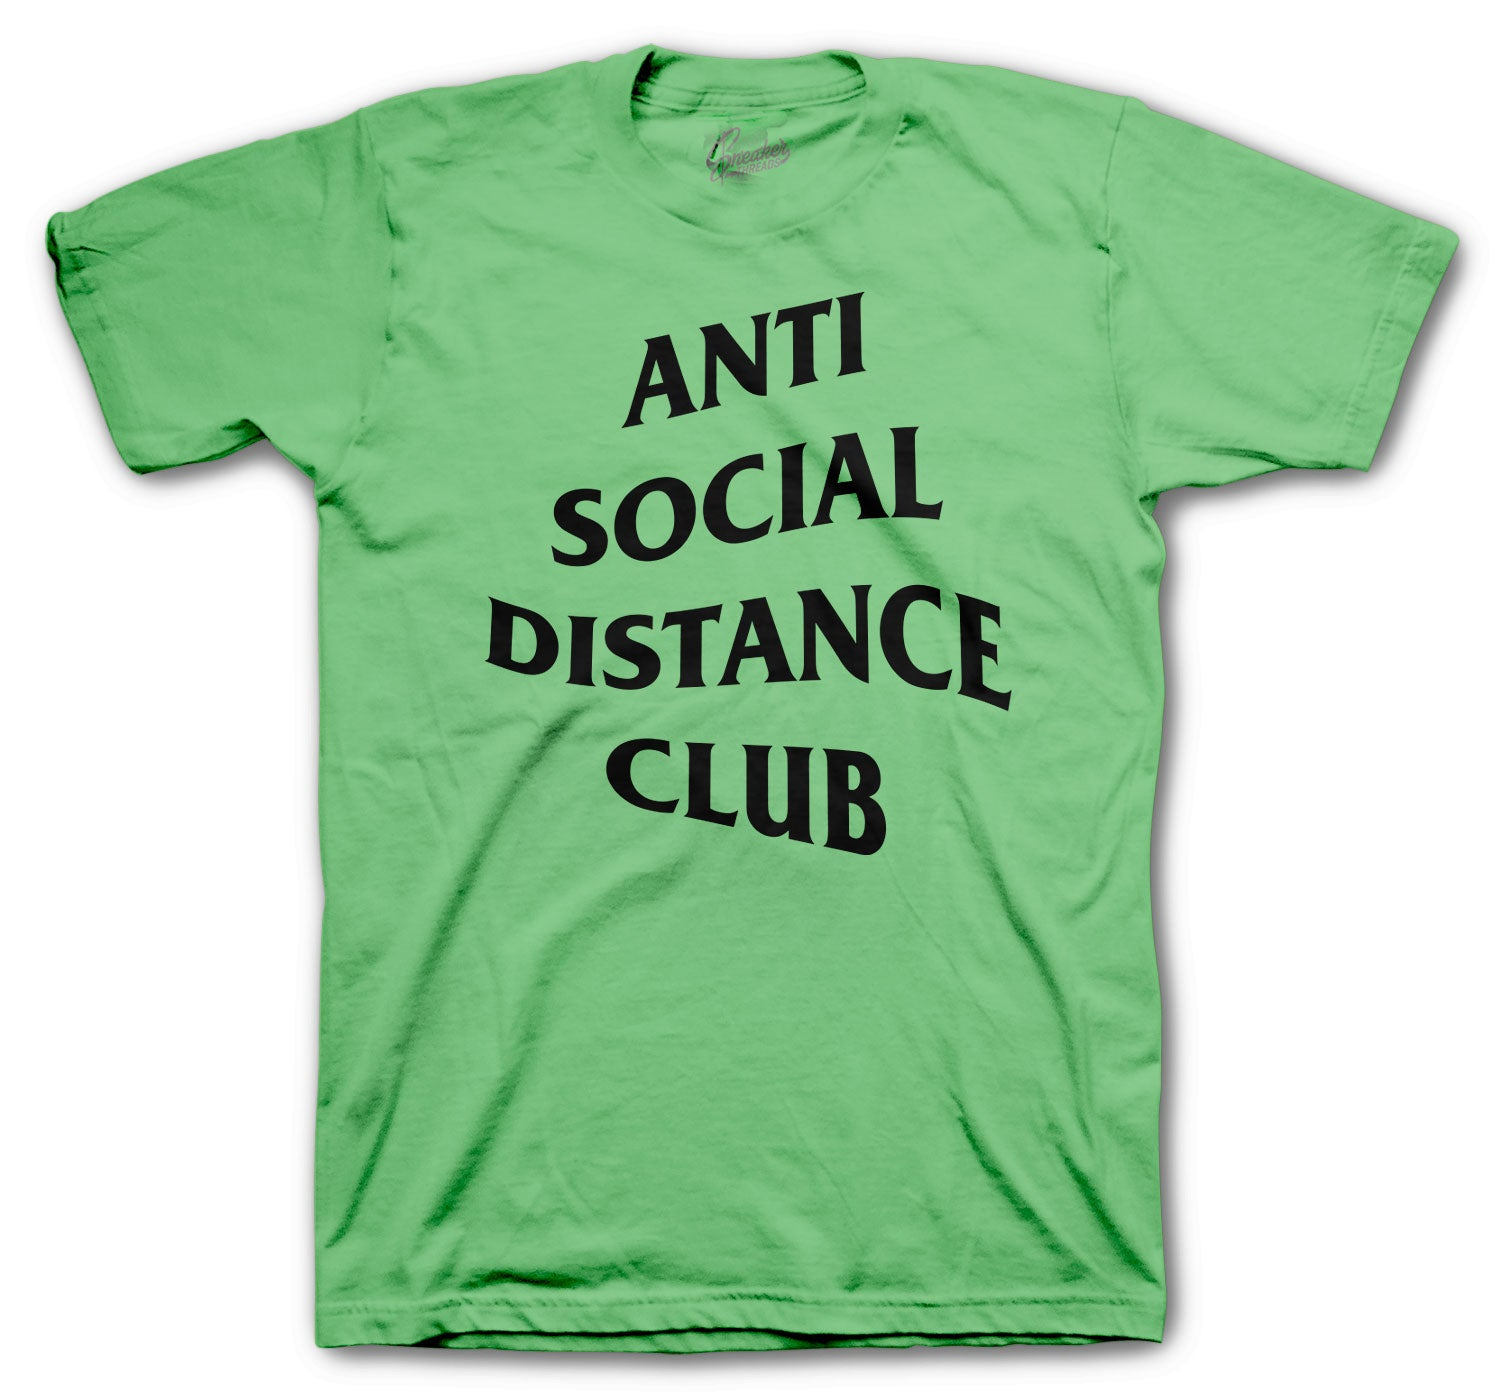 Jordan 1 Zen Green Social Distance Shirt